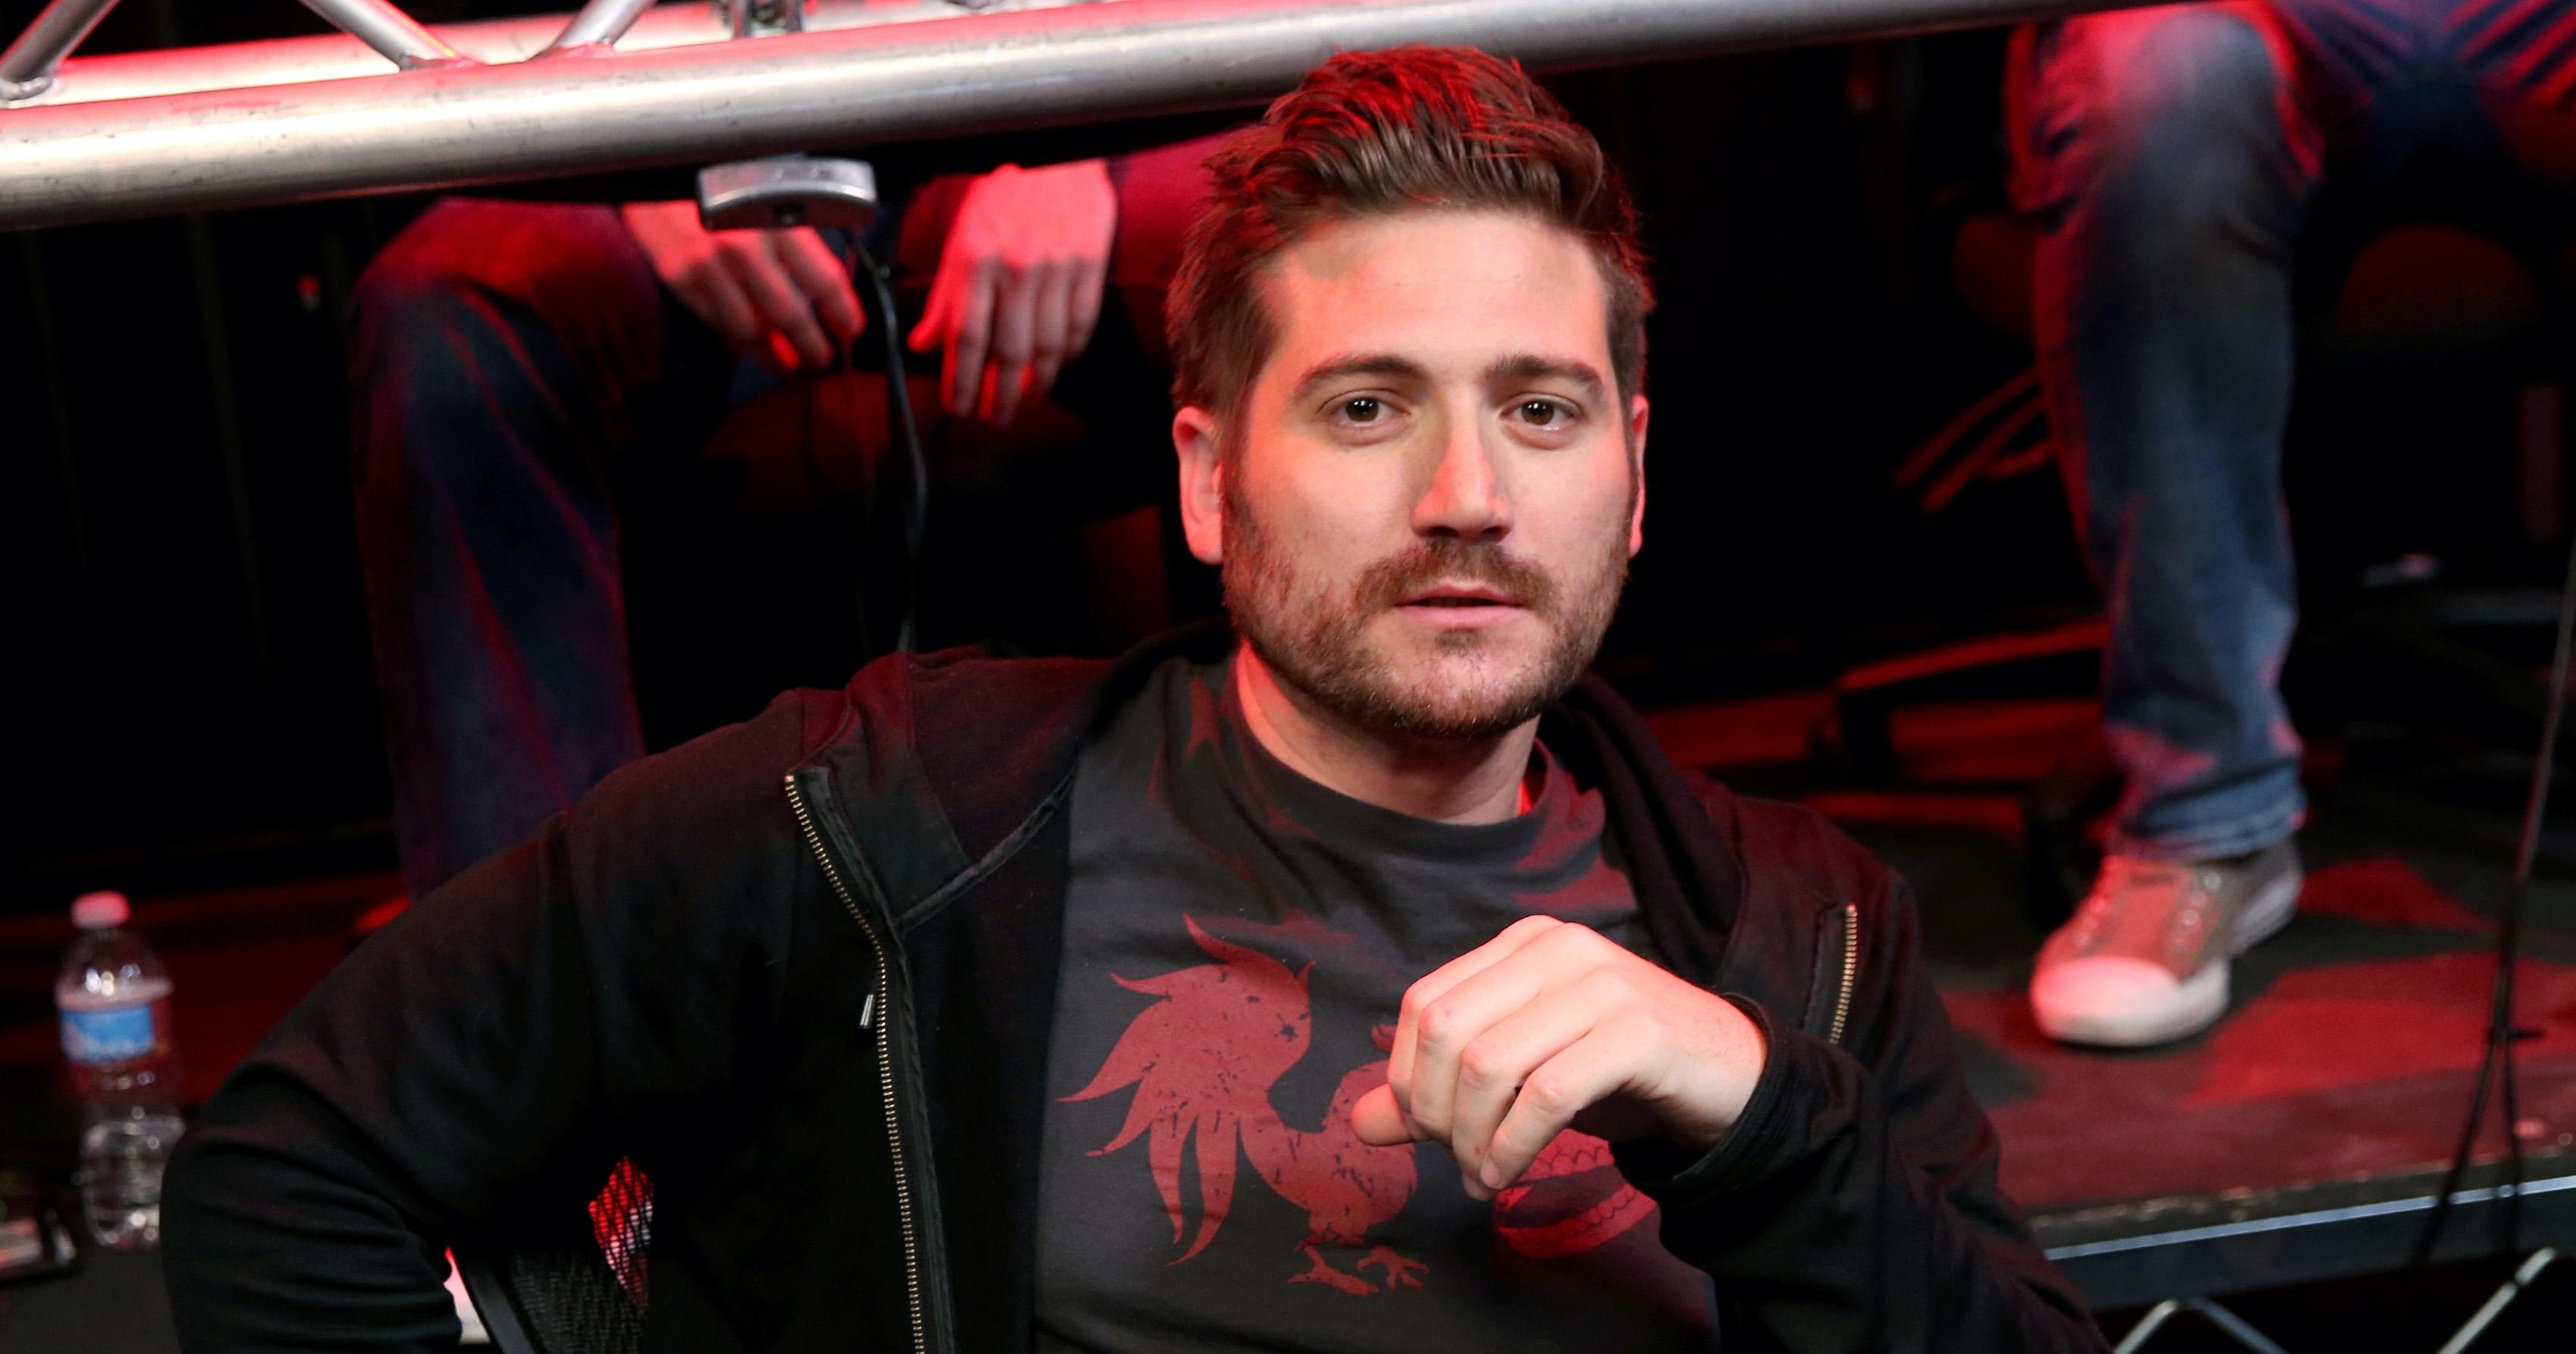 The 35-year old son of father (?) and mother(?) Adam Kovic in 2021 photo. Adam Kovic earned a  million dollar salary - leaving the net worth at  million in 2021